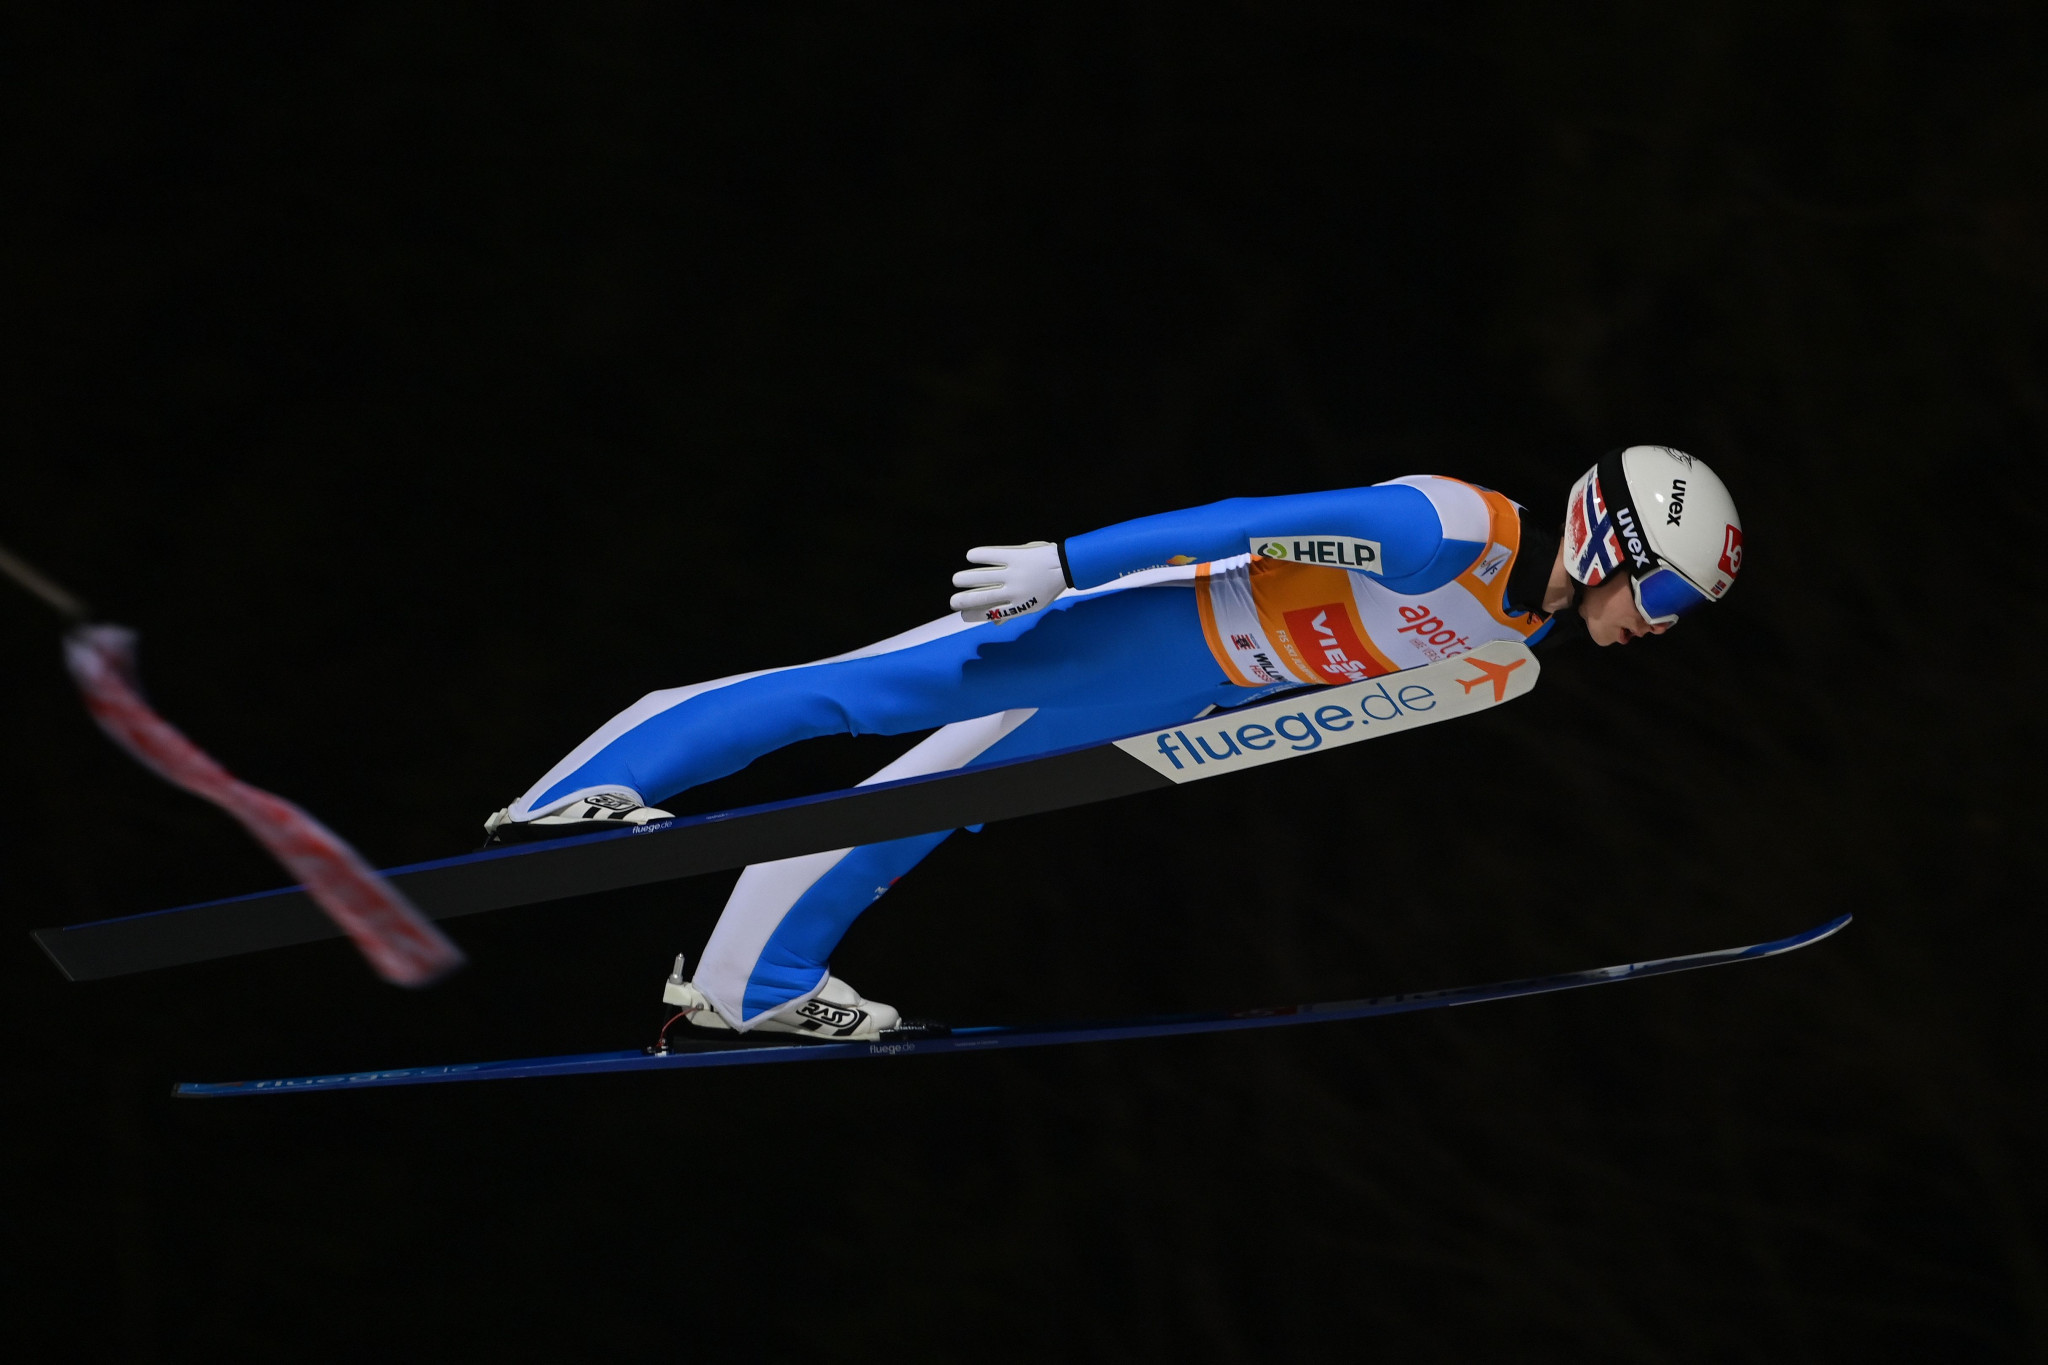 Granerud triumphs again in Willingen as wind impacts FIS Ski Jumping World Cup event